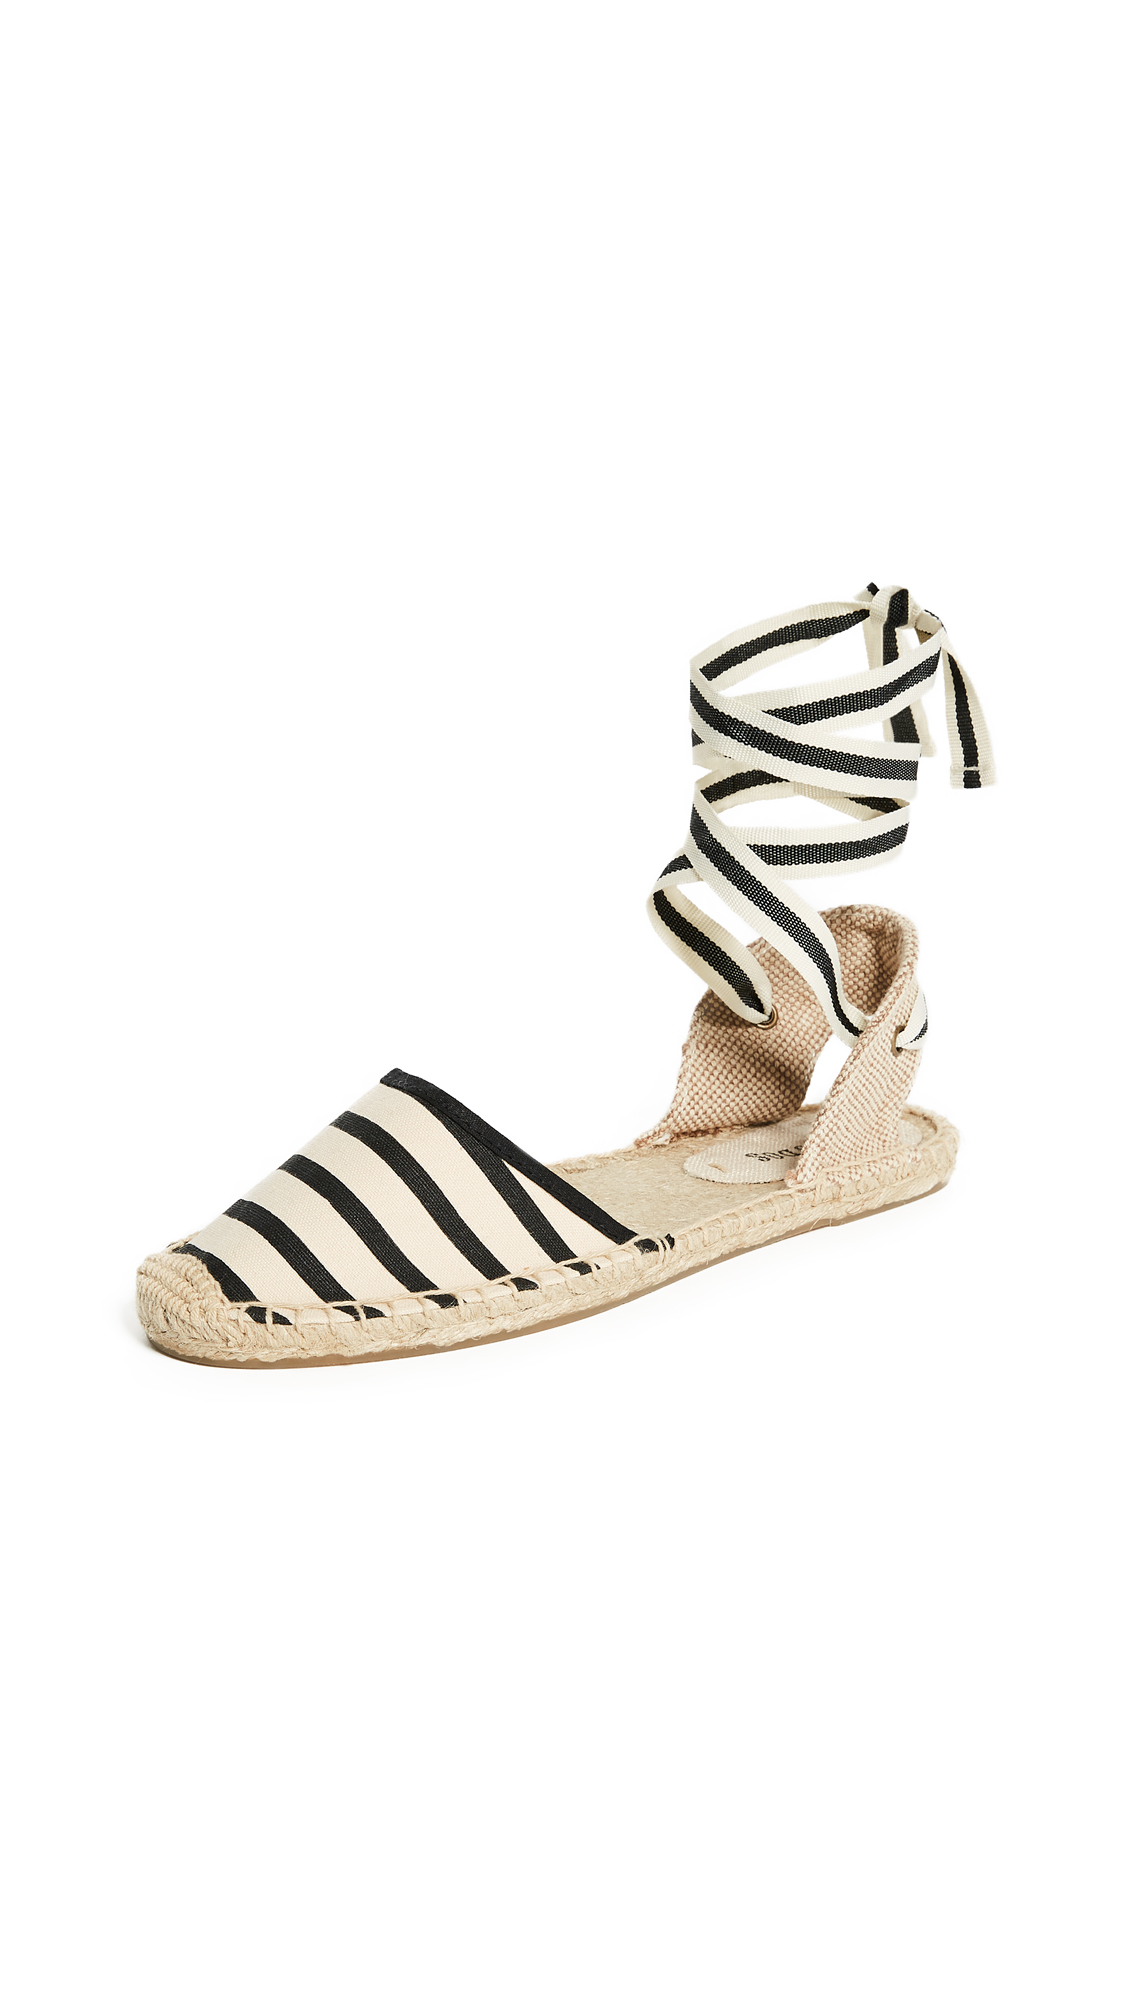 Soludos Striped Espadrille Sandals - Natural/Black